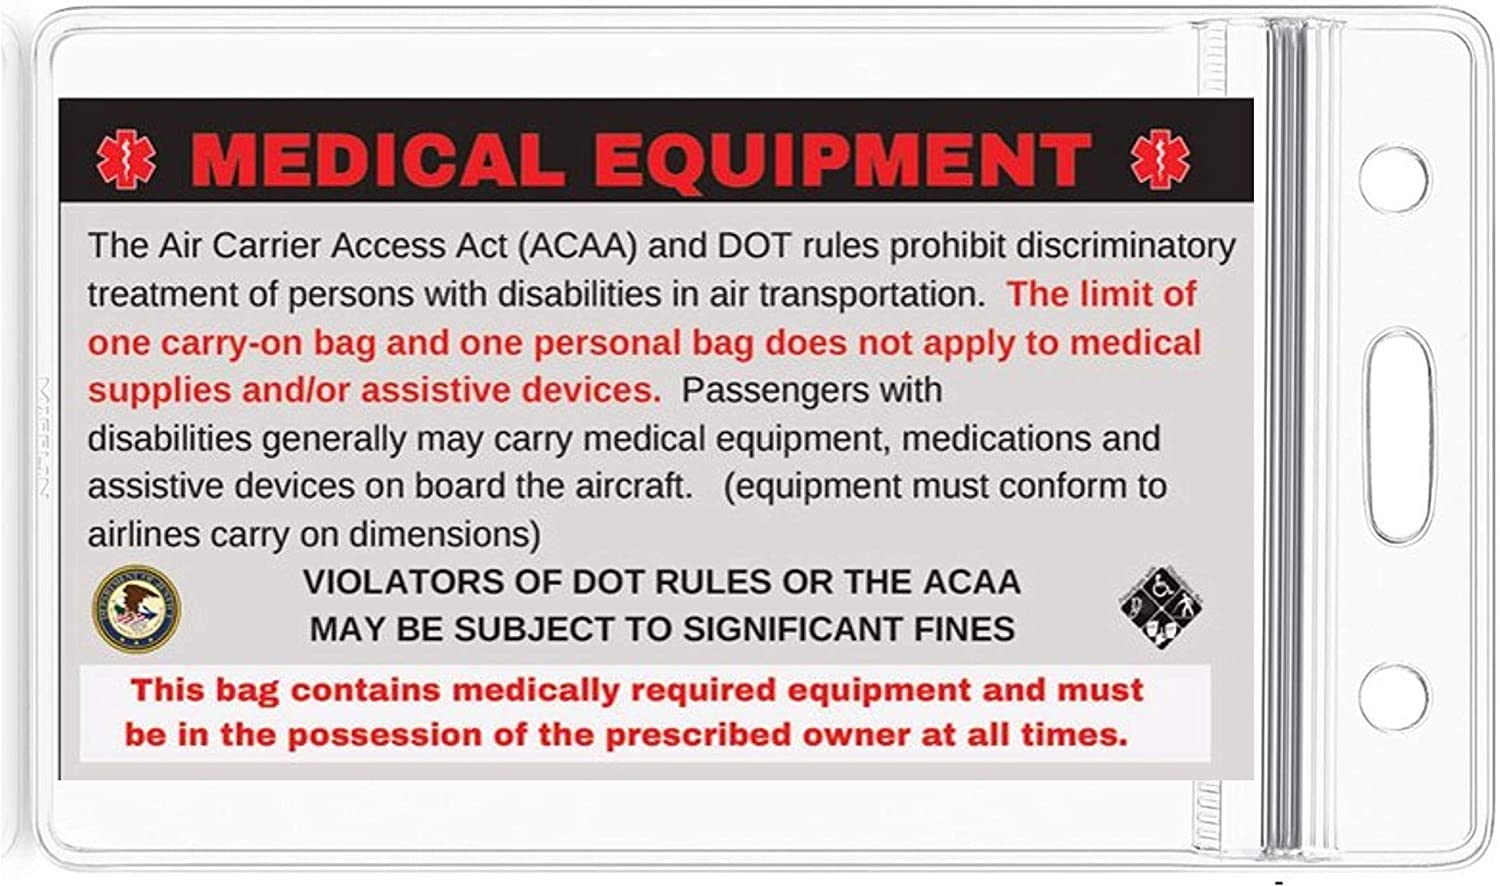 DOT and ACAA regulations MELT-112 Quantity 5 Medical Alert Equipment Luggage Tag Handle with Care